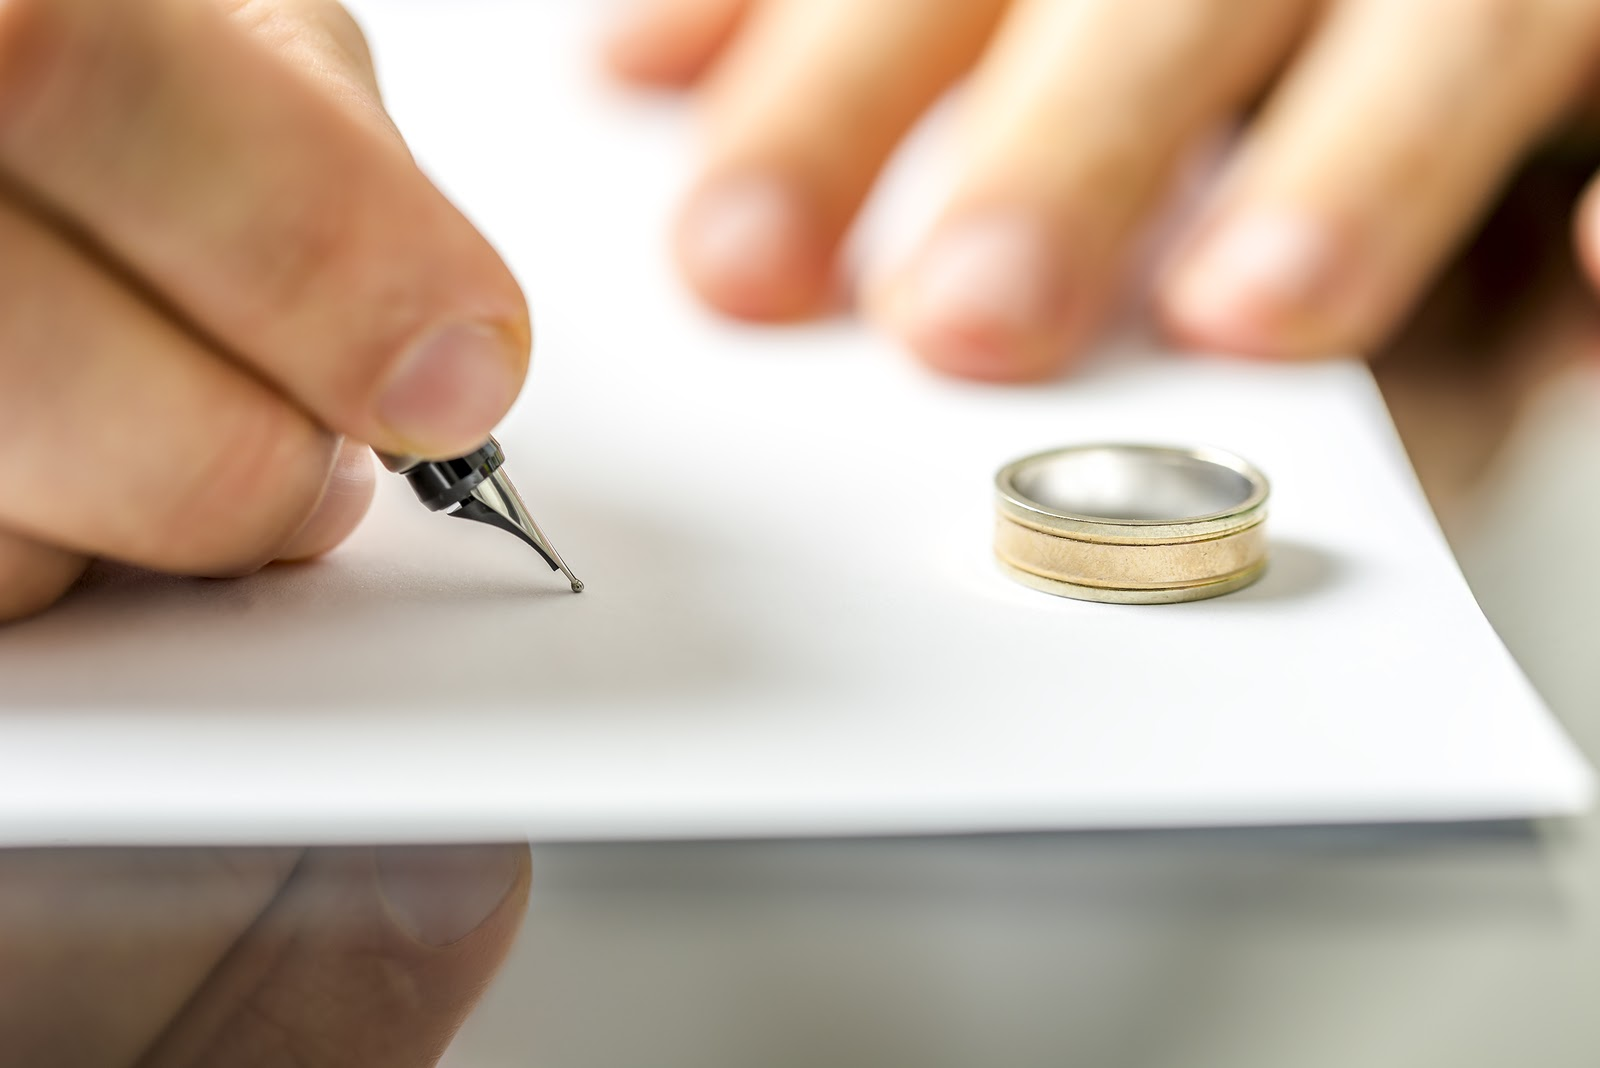 divorce for cheating spouse in tx - Can I Get a Divorce in Texas if My Spouse Cheated on Me?